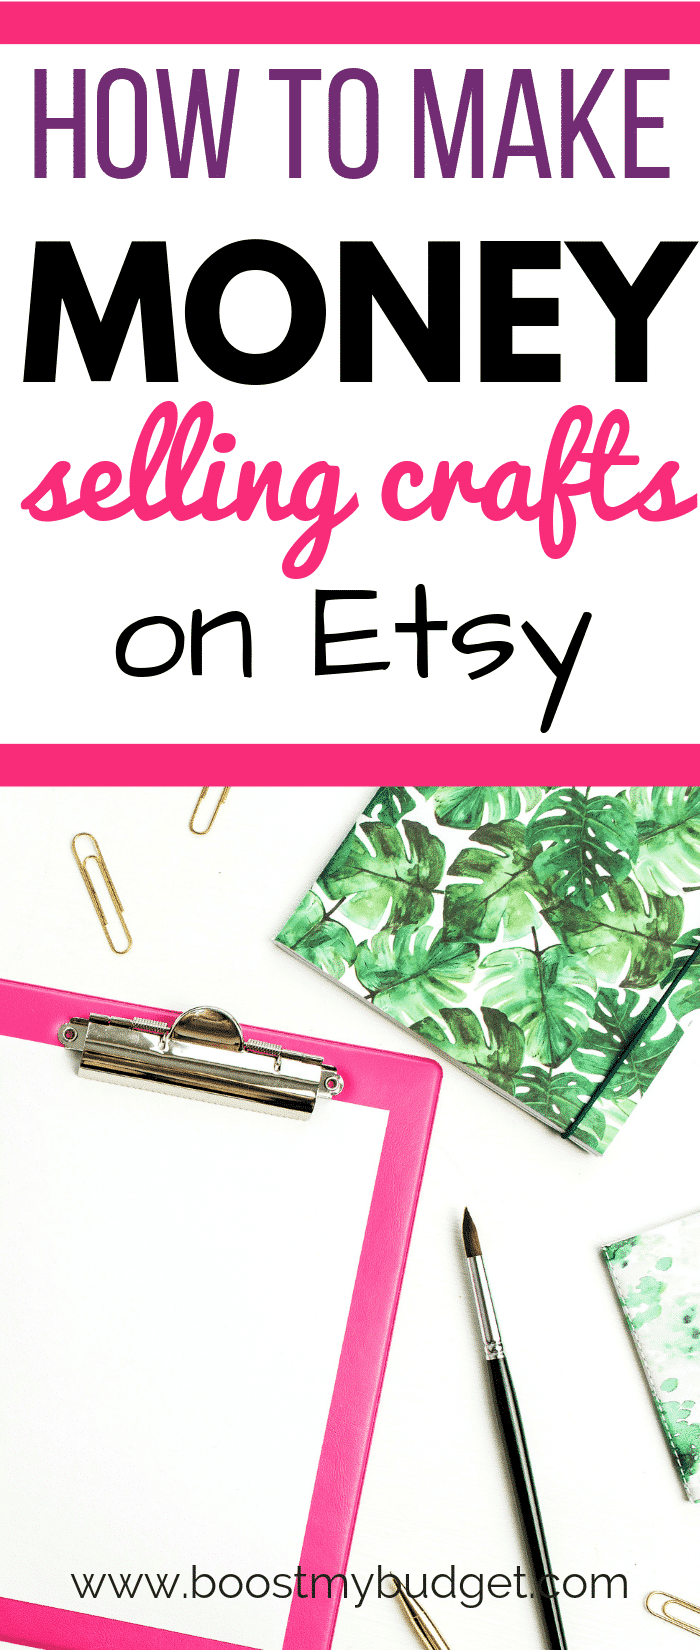 Wondering how to make an Etsy shop? This woman sells handmade crafts and makes money from home. Could you do the same? Click through for ideas and inspiration, and start making extra money this month!